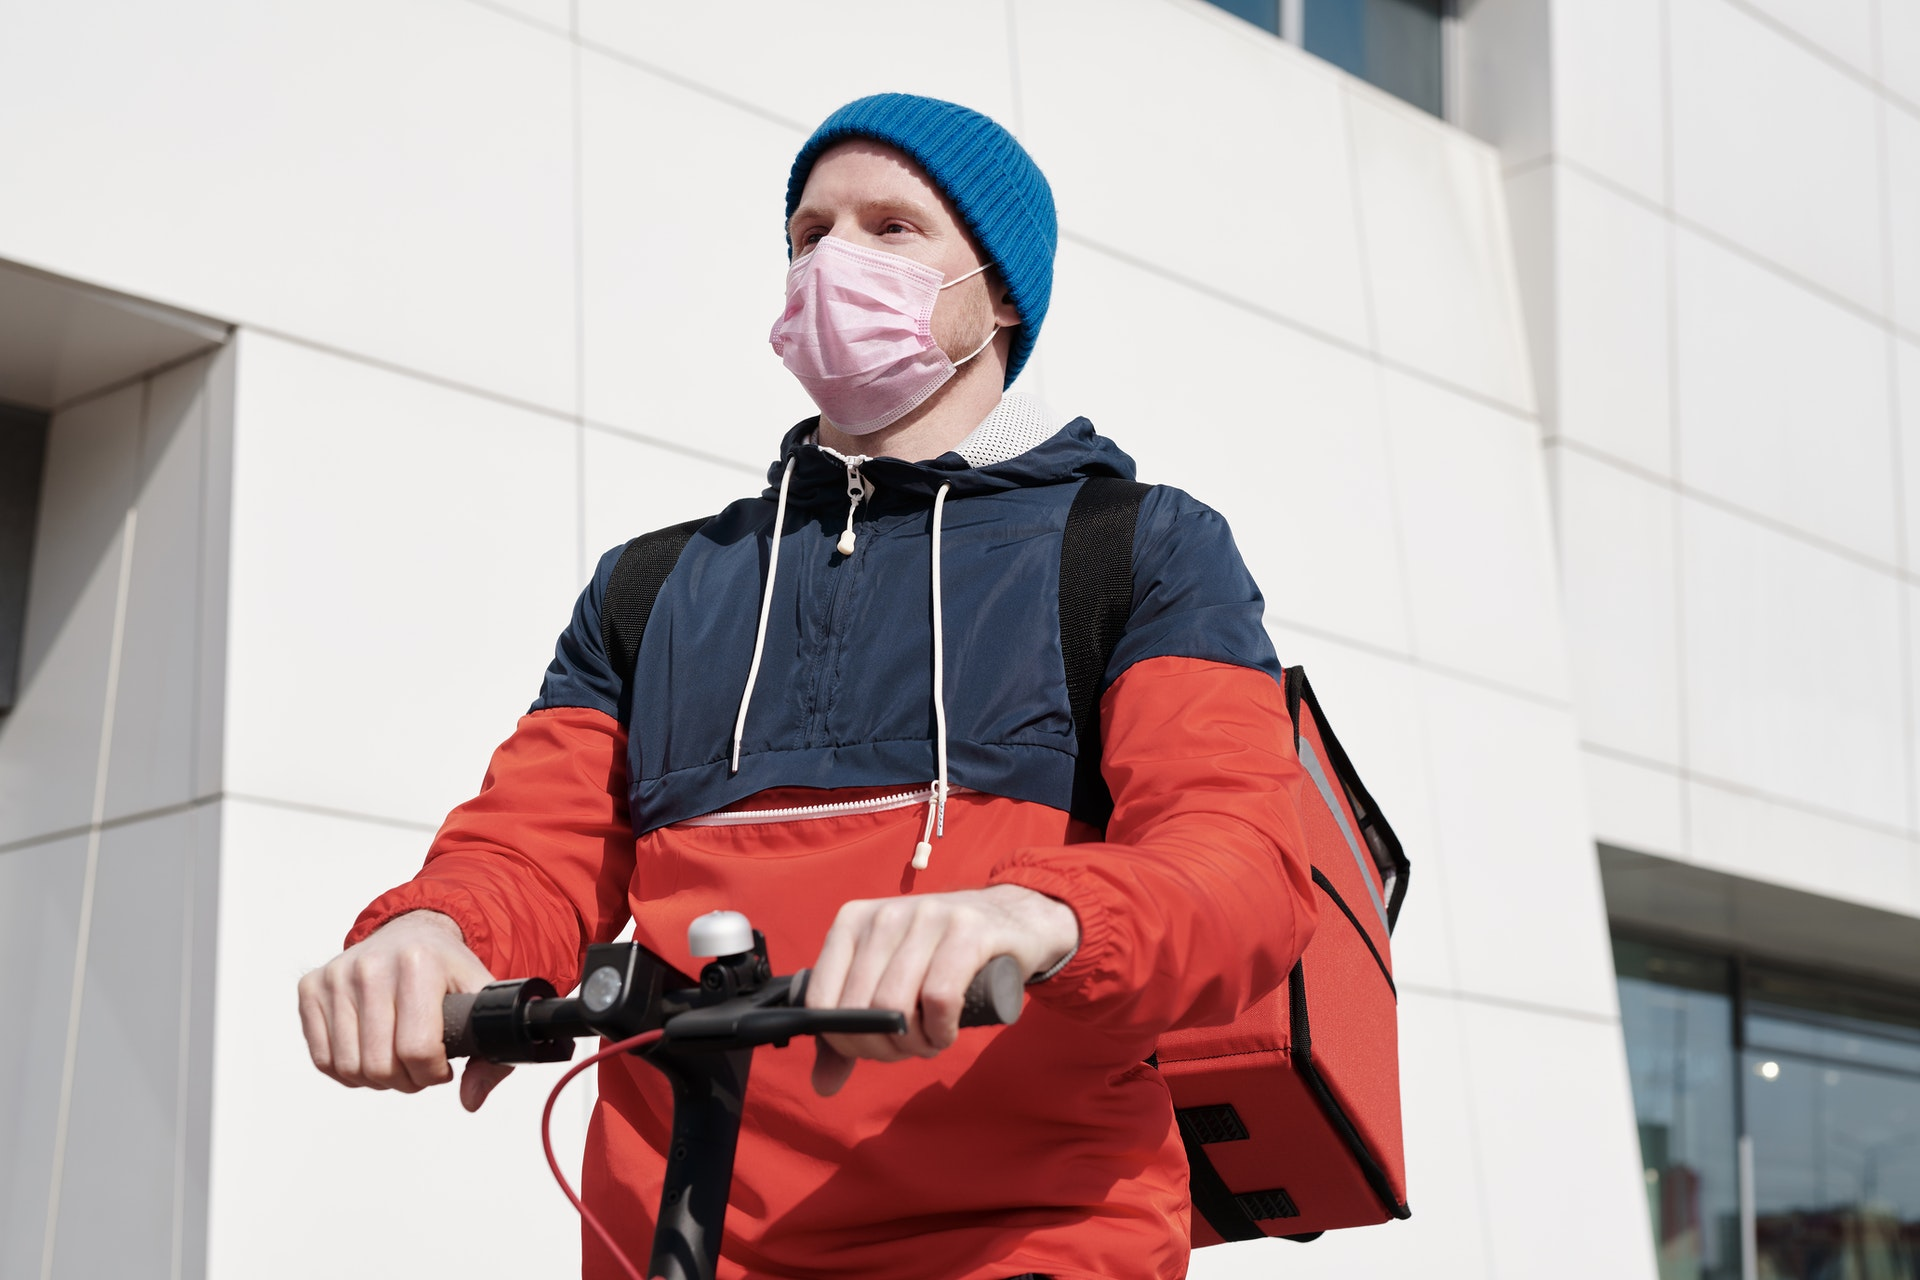 Man-on-electric-scooter-with-mask-on.jpg